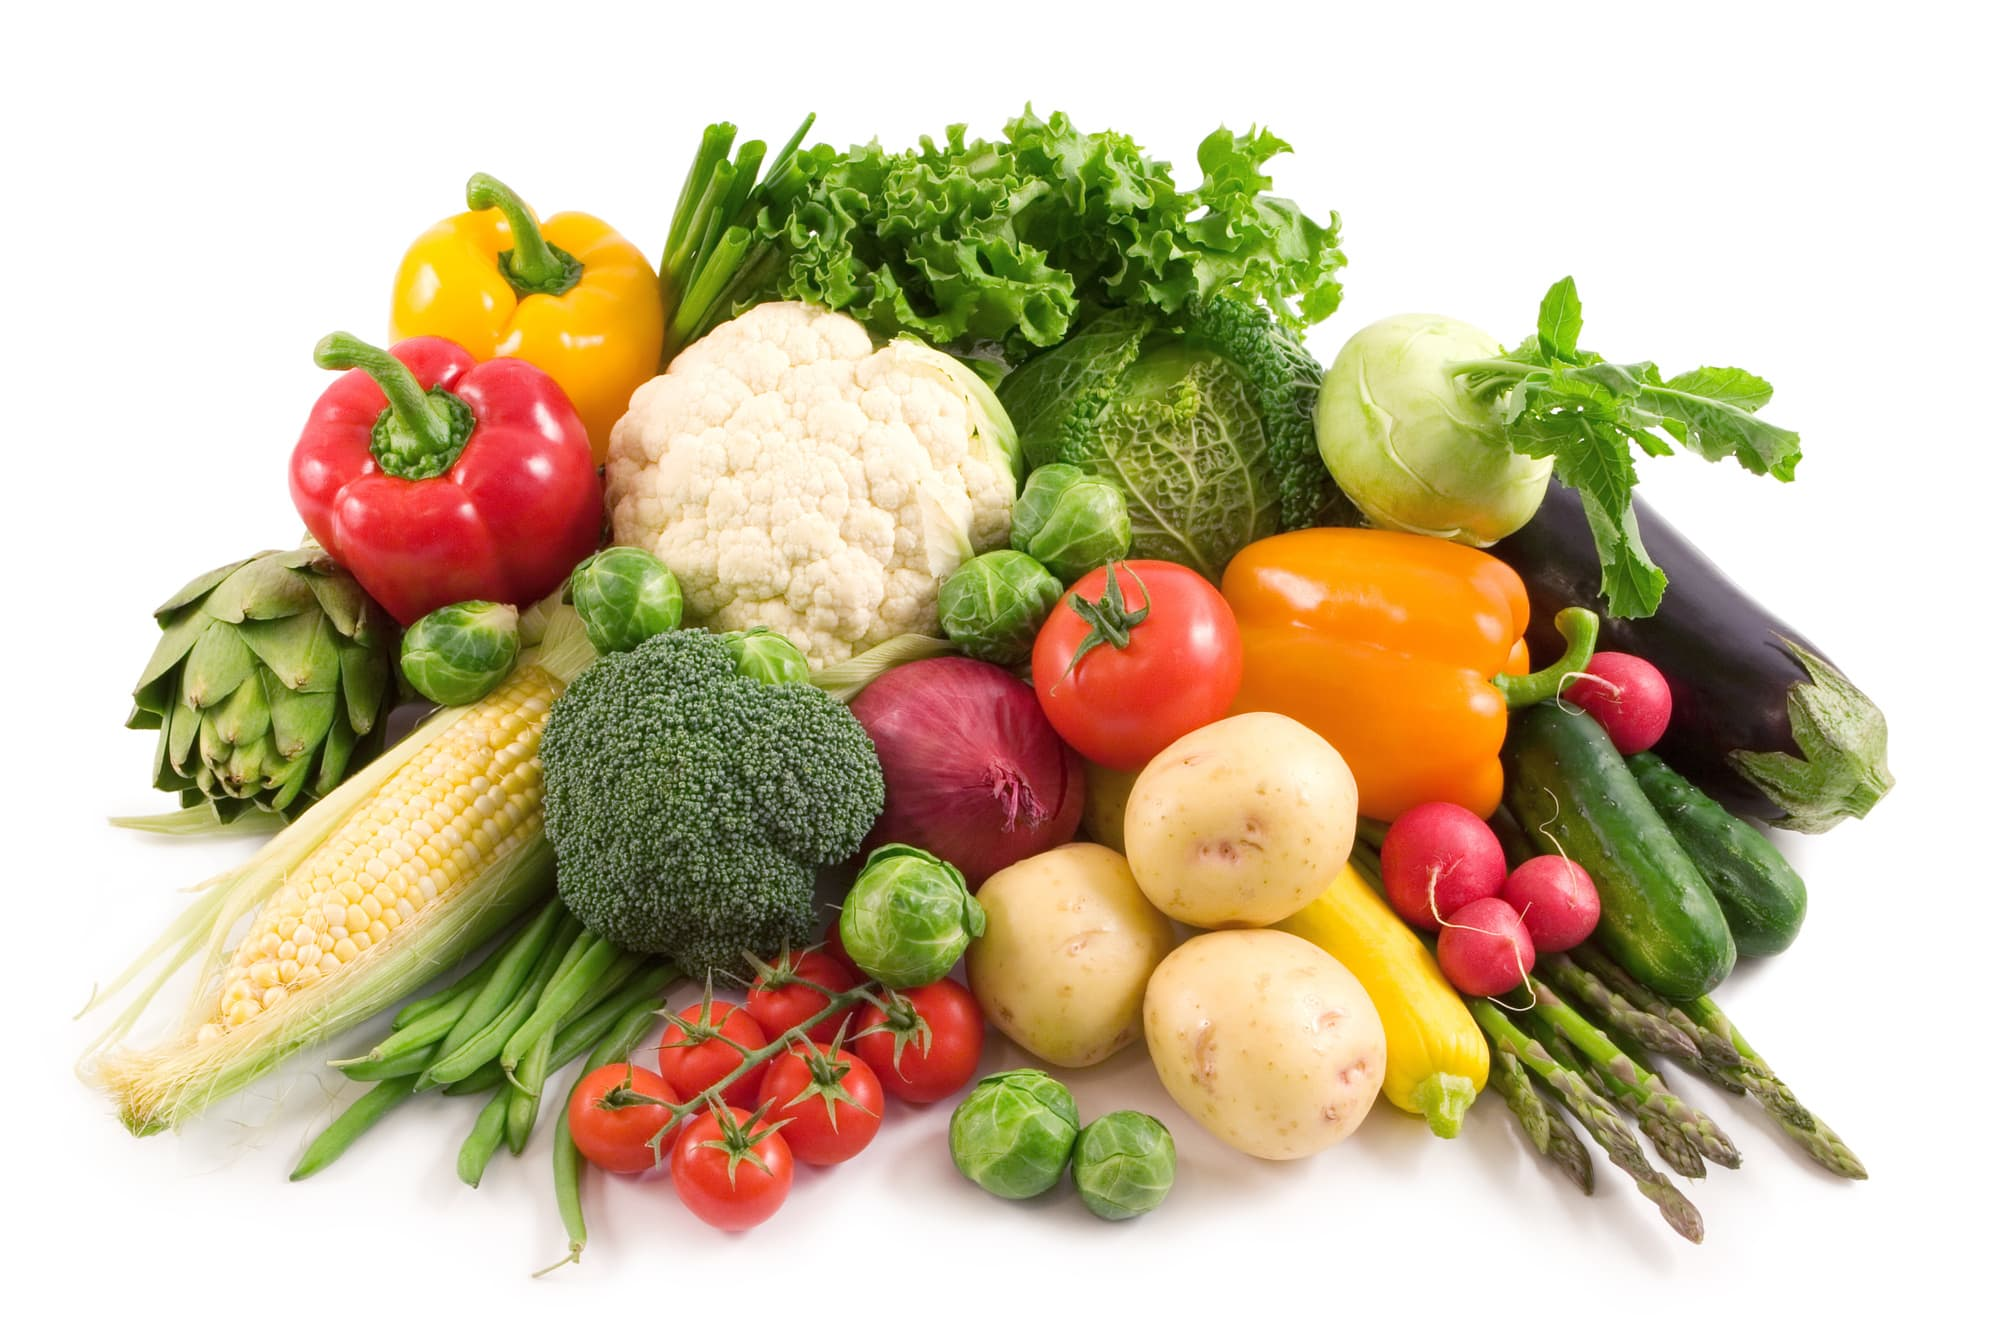 Fresh and Exotic Vegetables